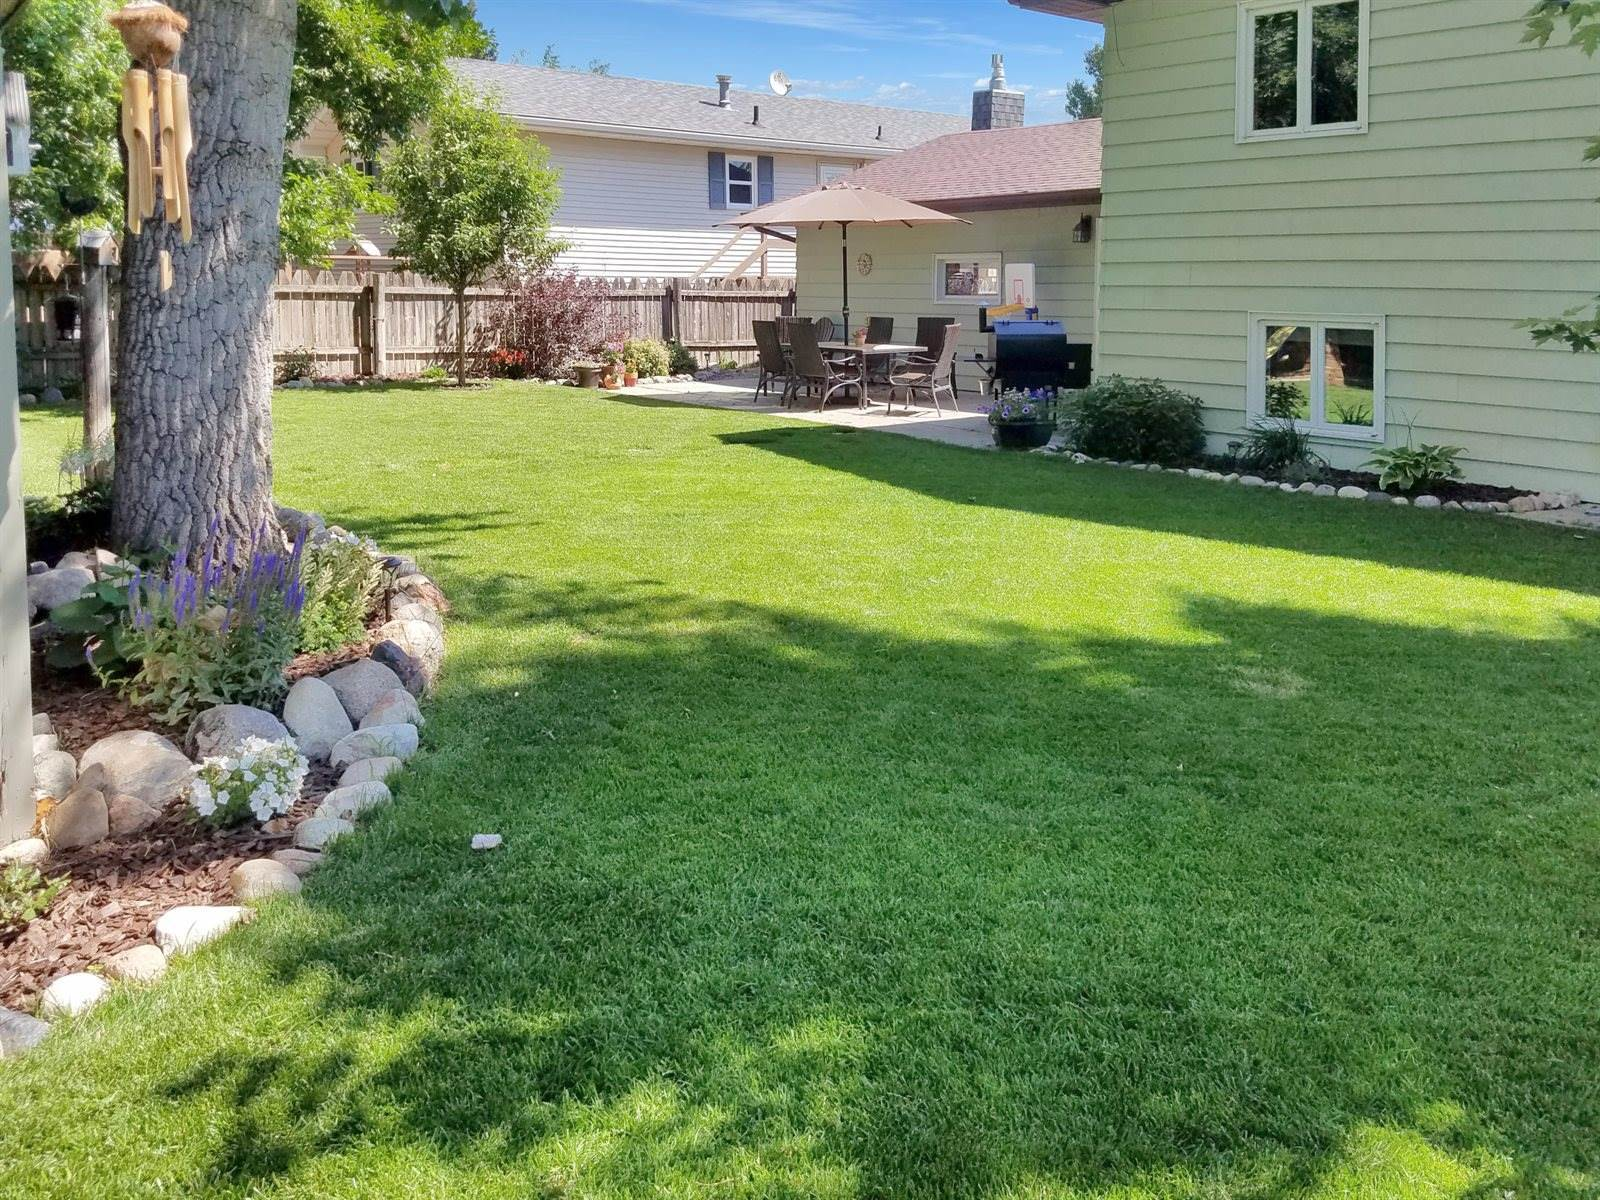 2017 4th Ave East, Williston, ND 58801